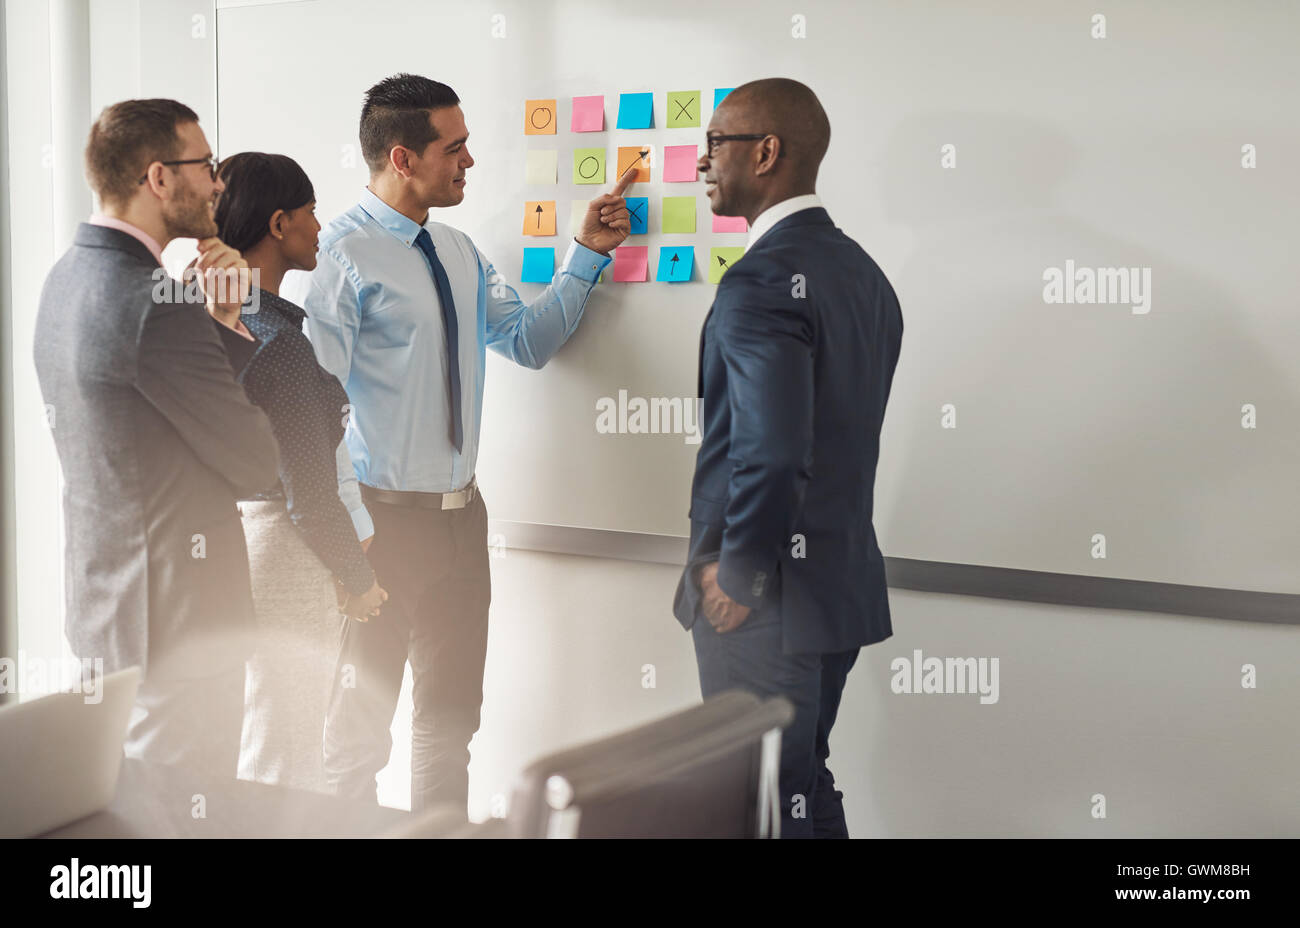 Group of multiracial businesspeople standing chatting as they point to a set of colorful memos on the wall trying - Stock Image